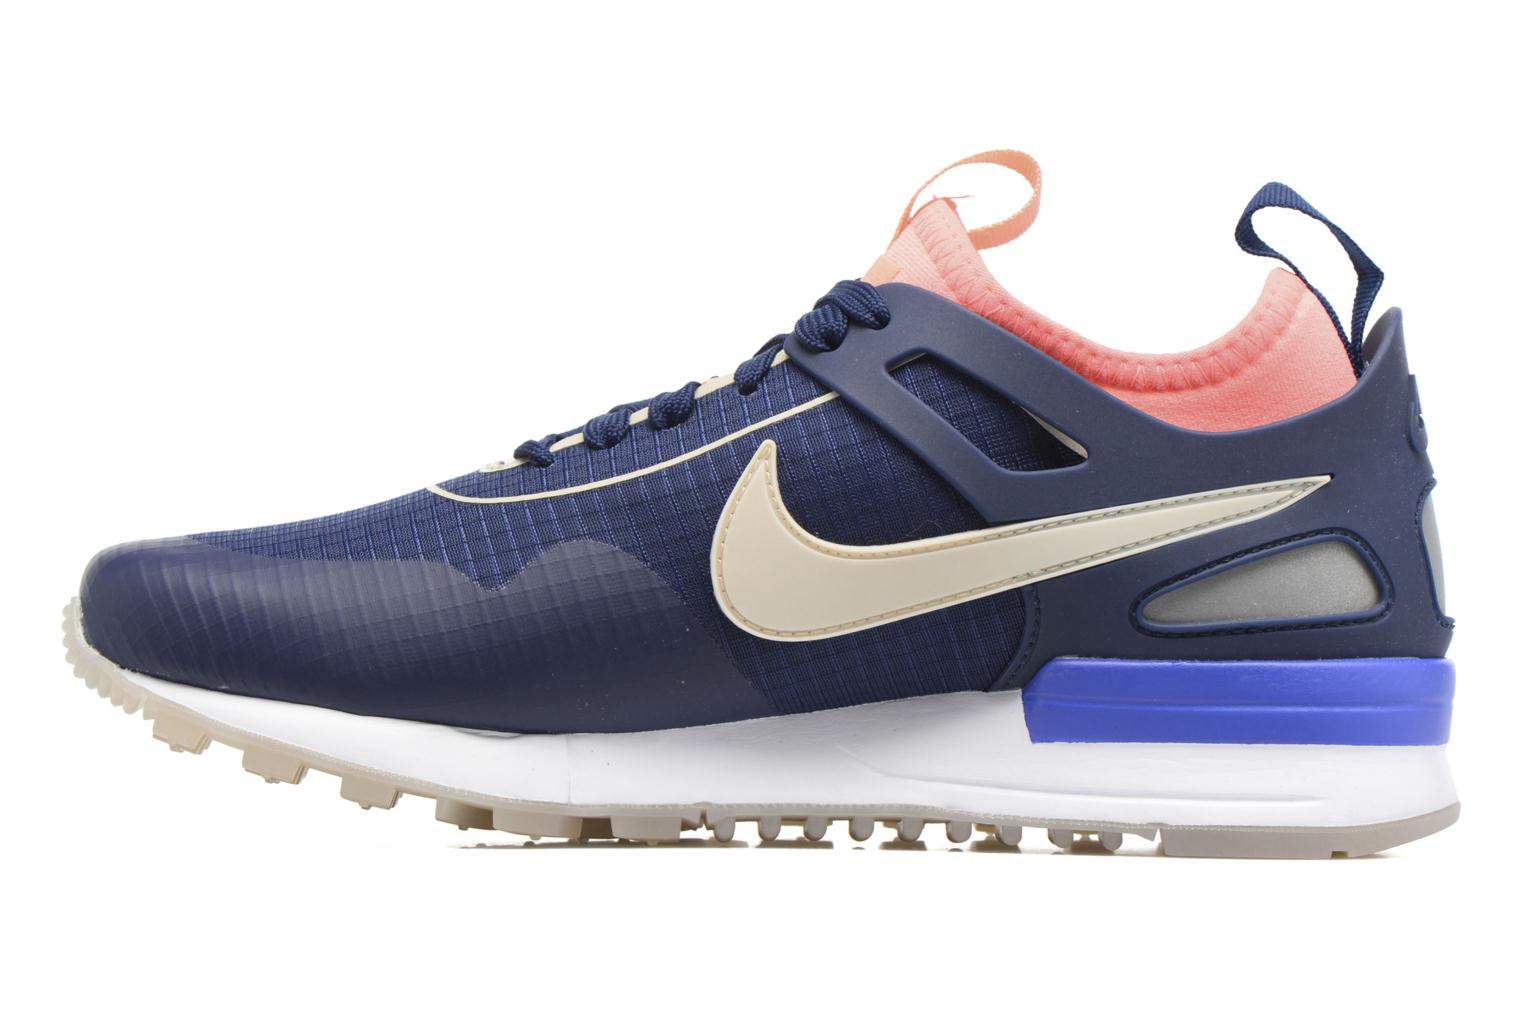 White Tech Si Air 89 Glow Oatmeal Blue Nike Pegasus Binary W Nike Lava wUXxqp7